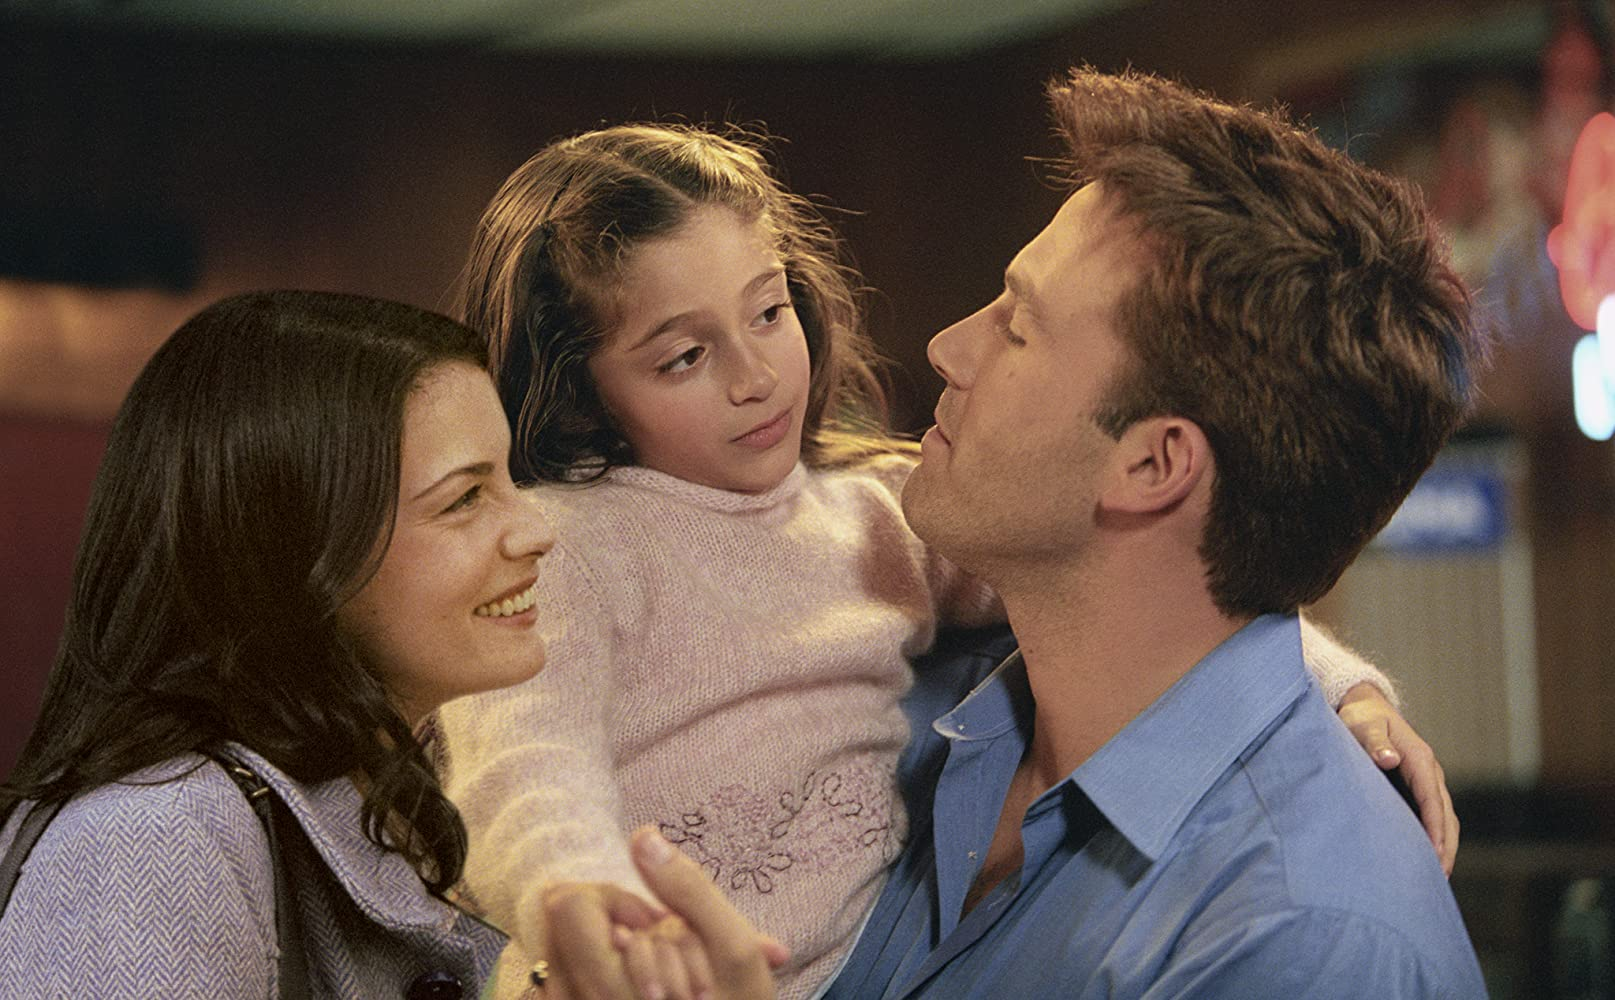 Liv Tyler, Ben Affleck, and Raquel Castro in Jersey Girl (2004)